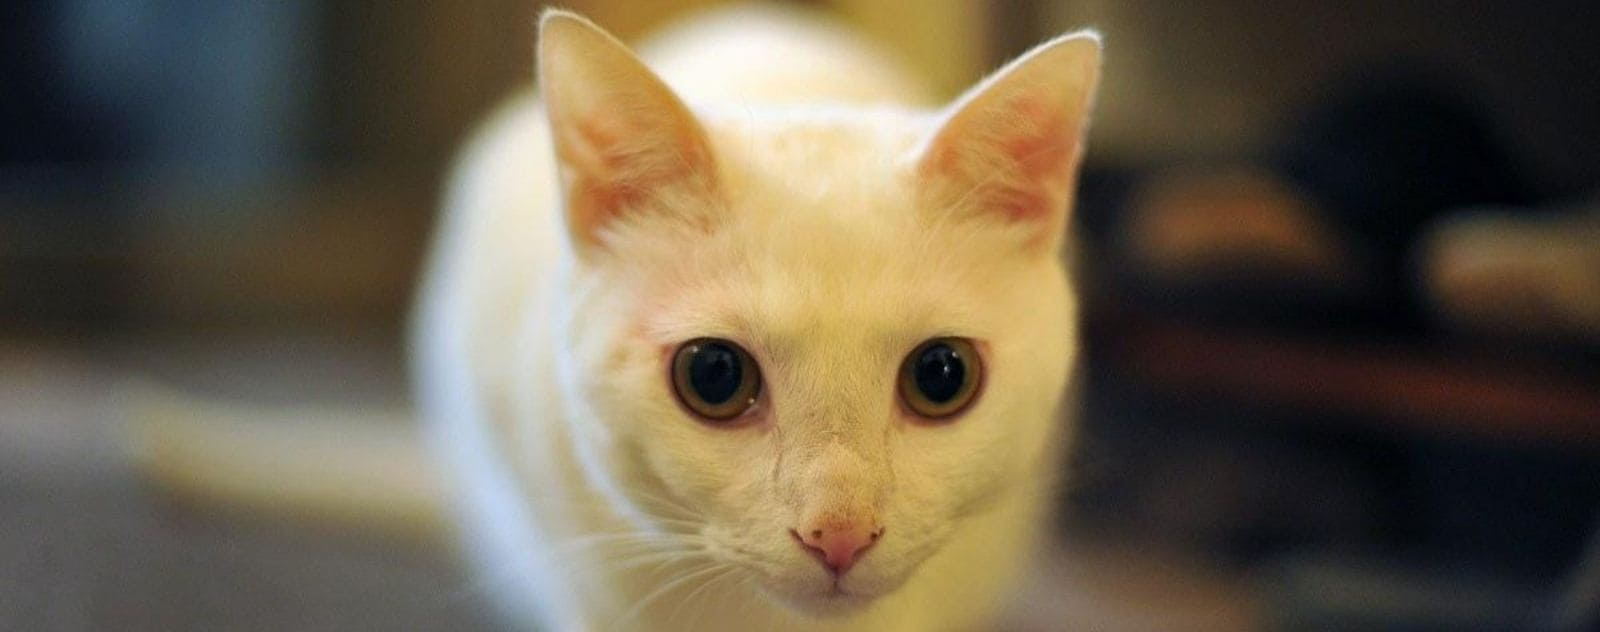 chat blanc chaton japon neko